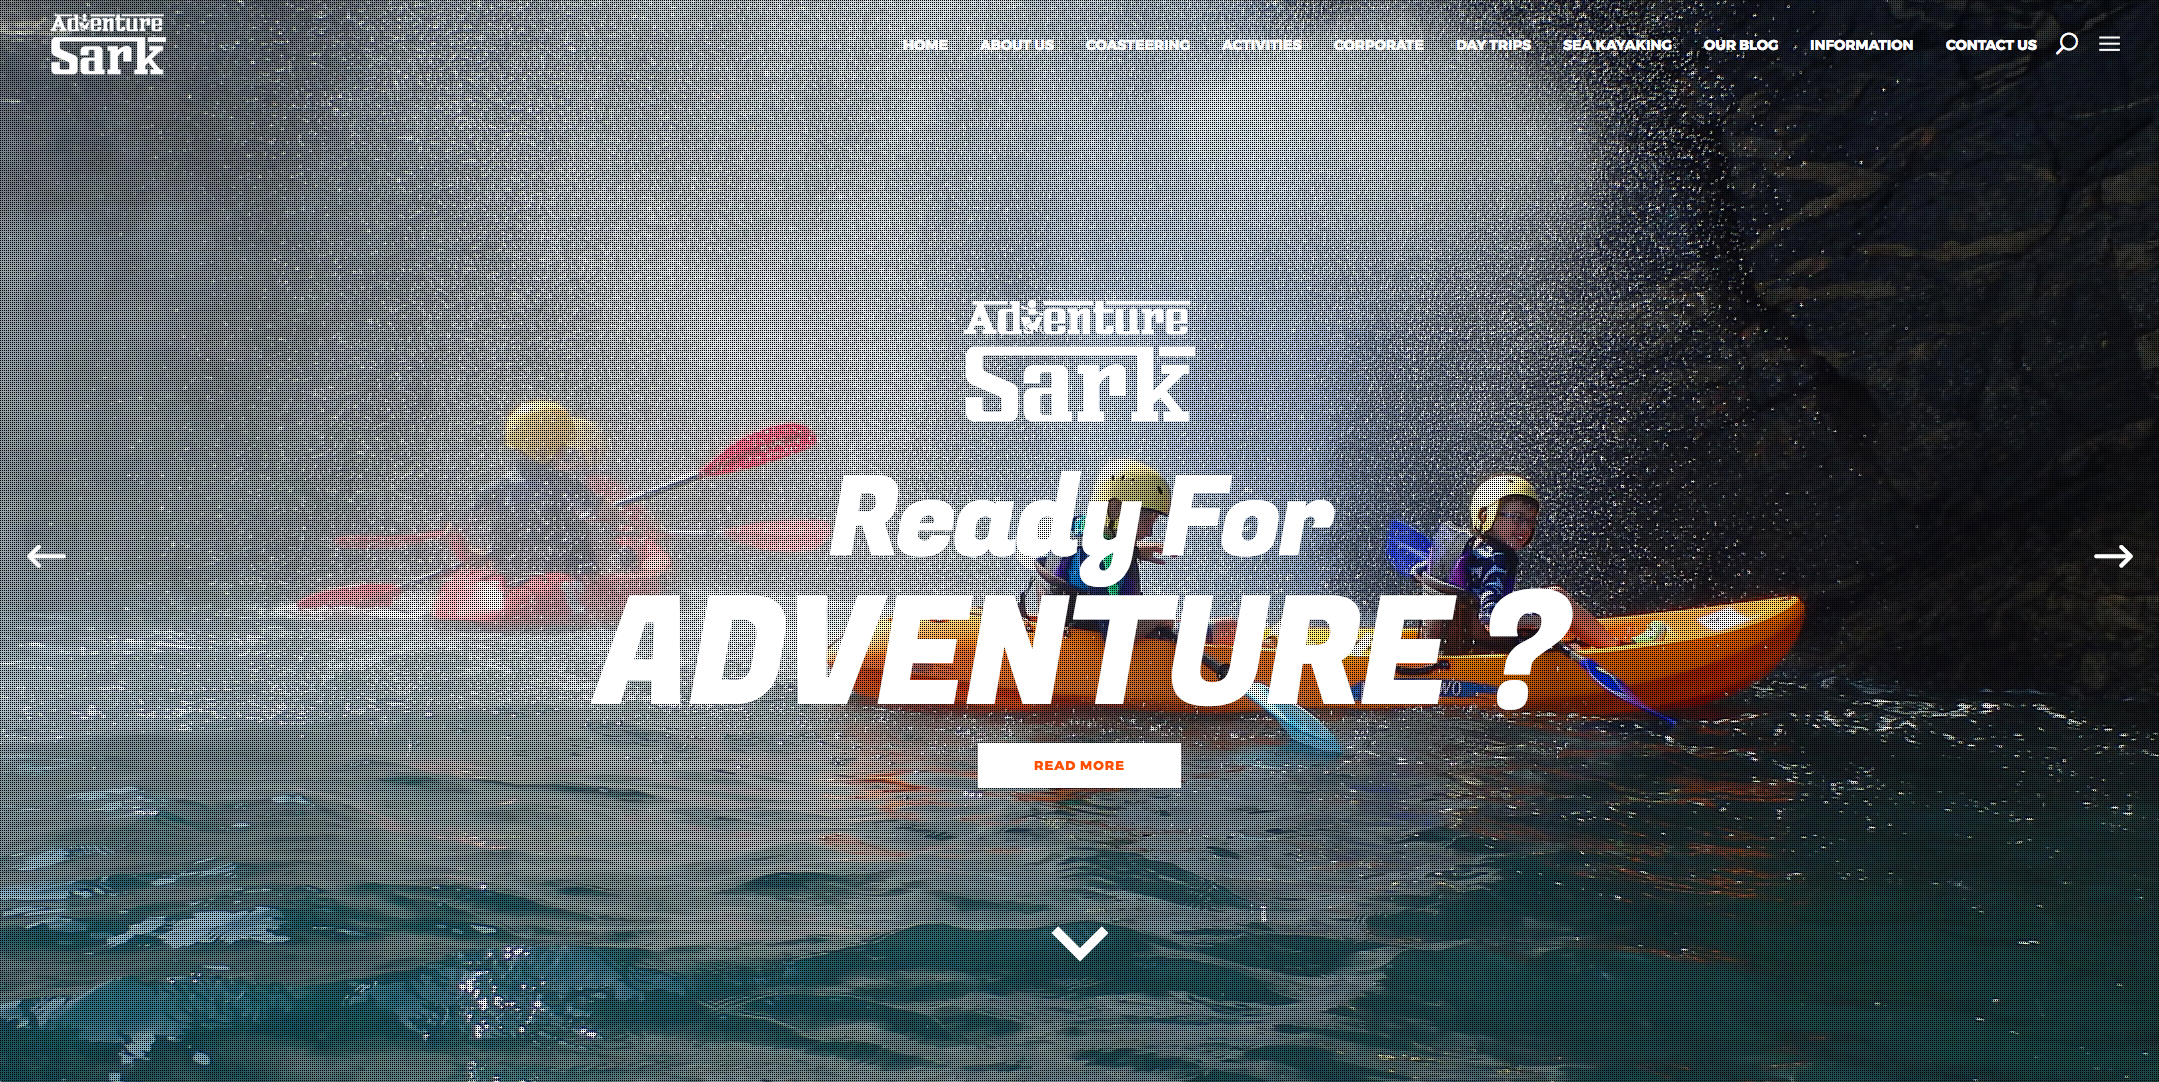 Adventure Sark Website 2019